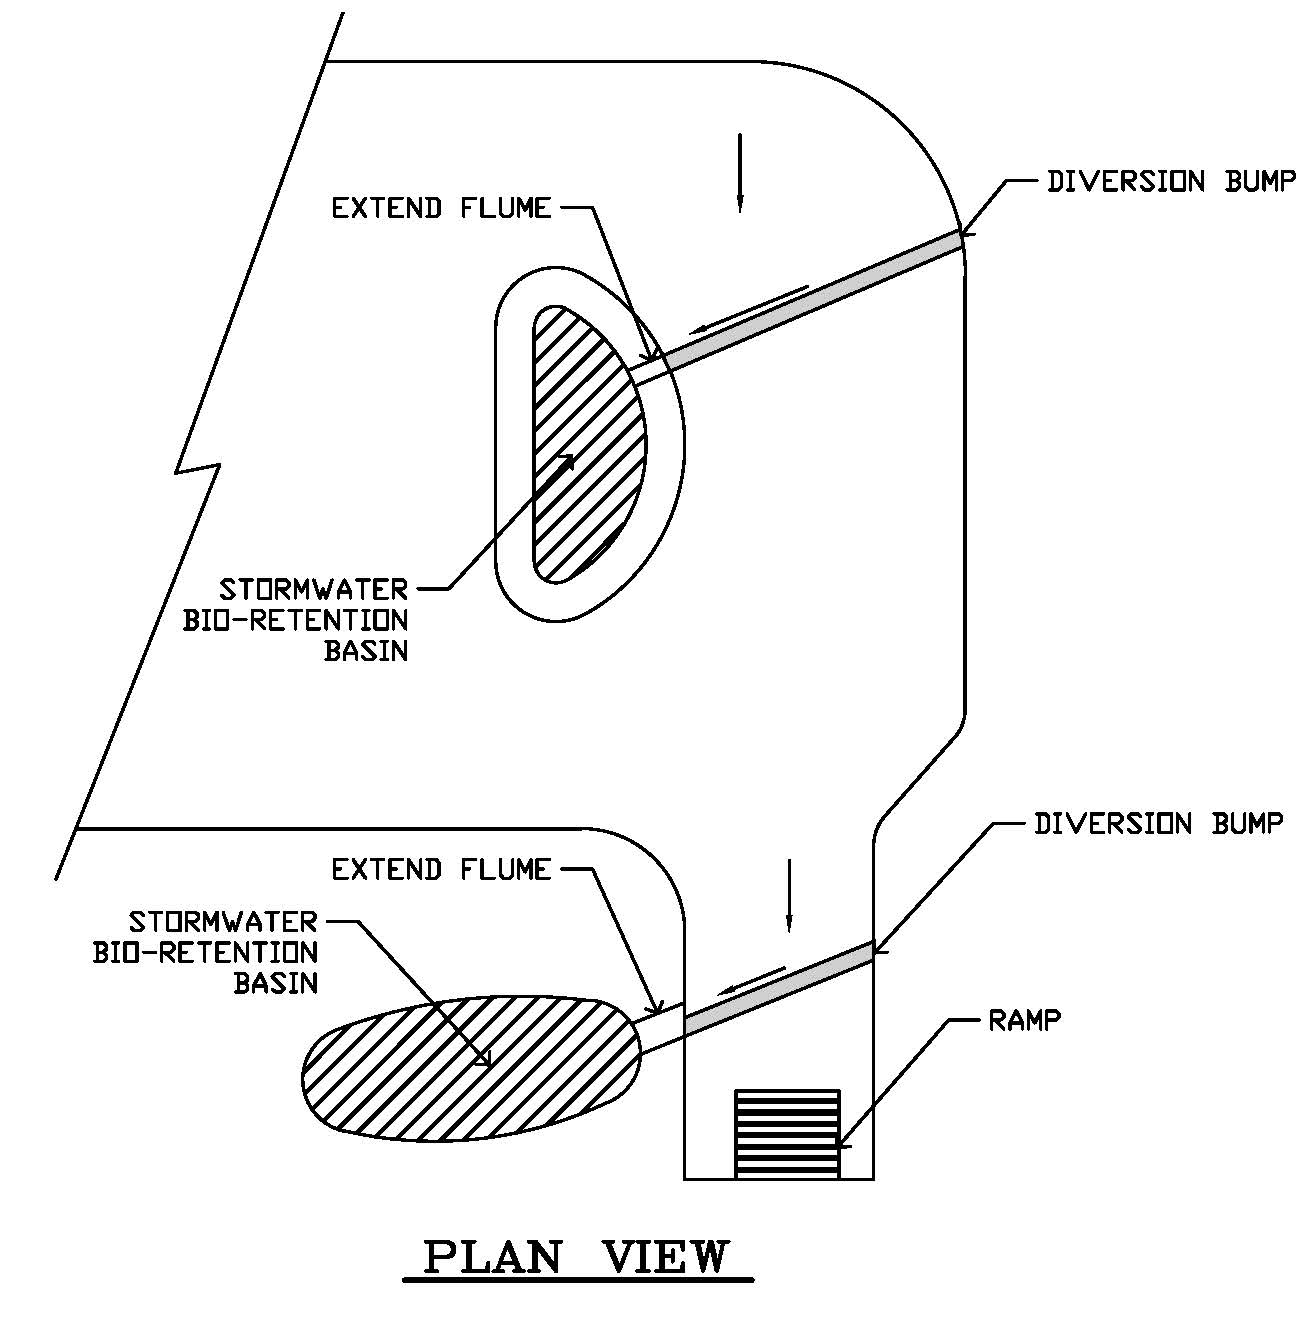 Water diversion bump plan view diagram.